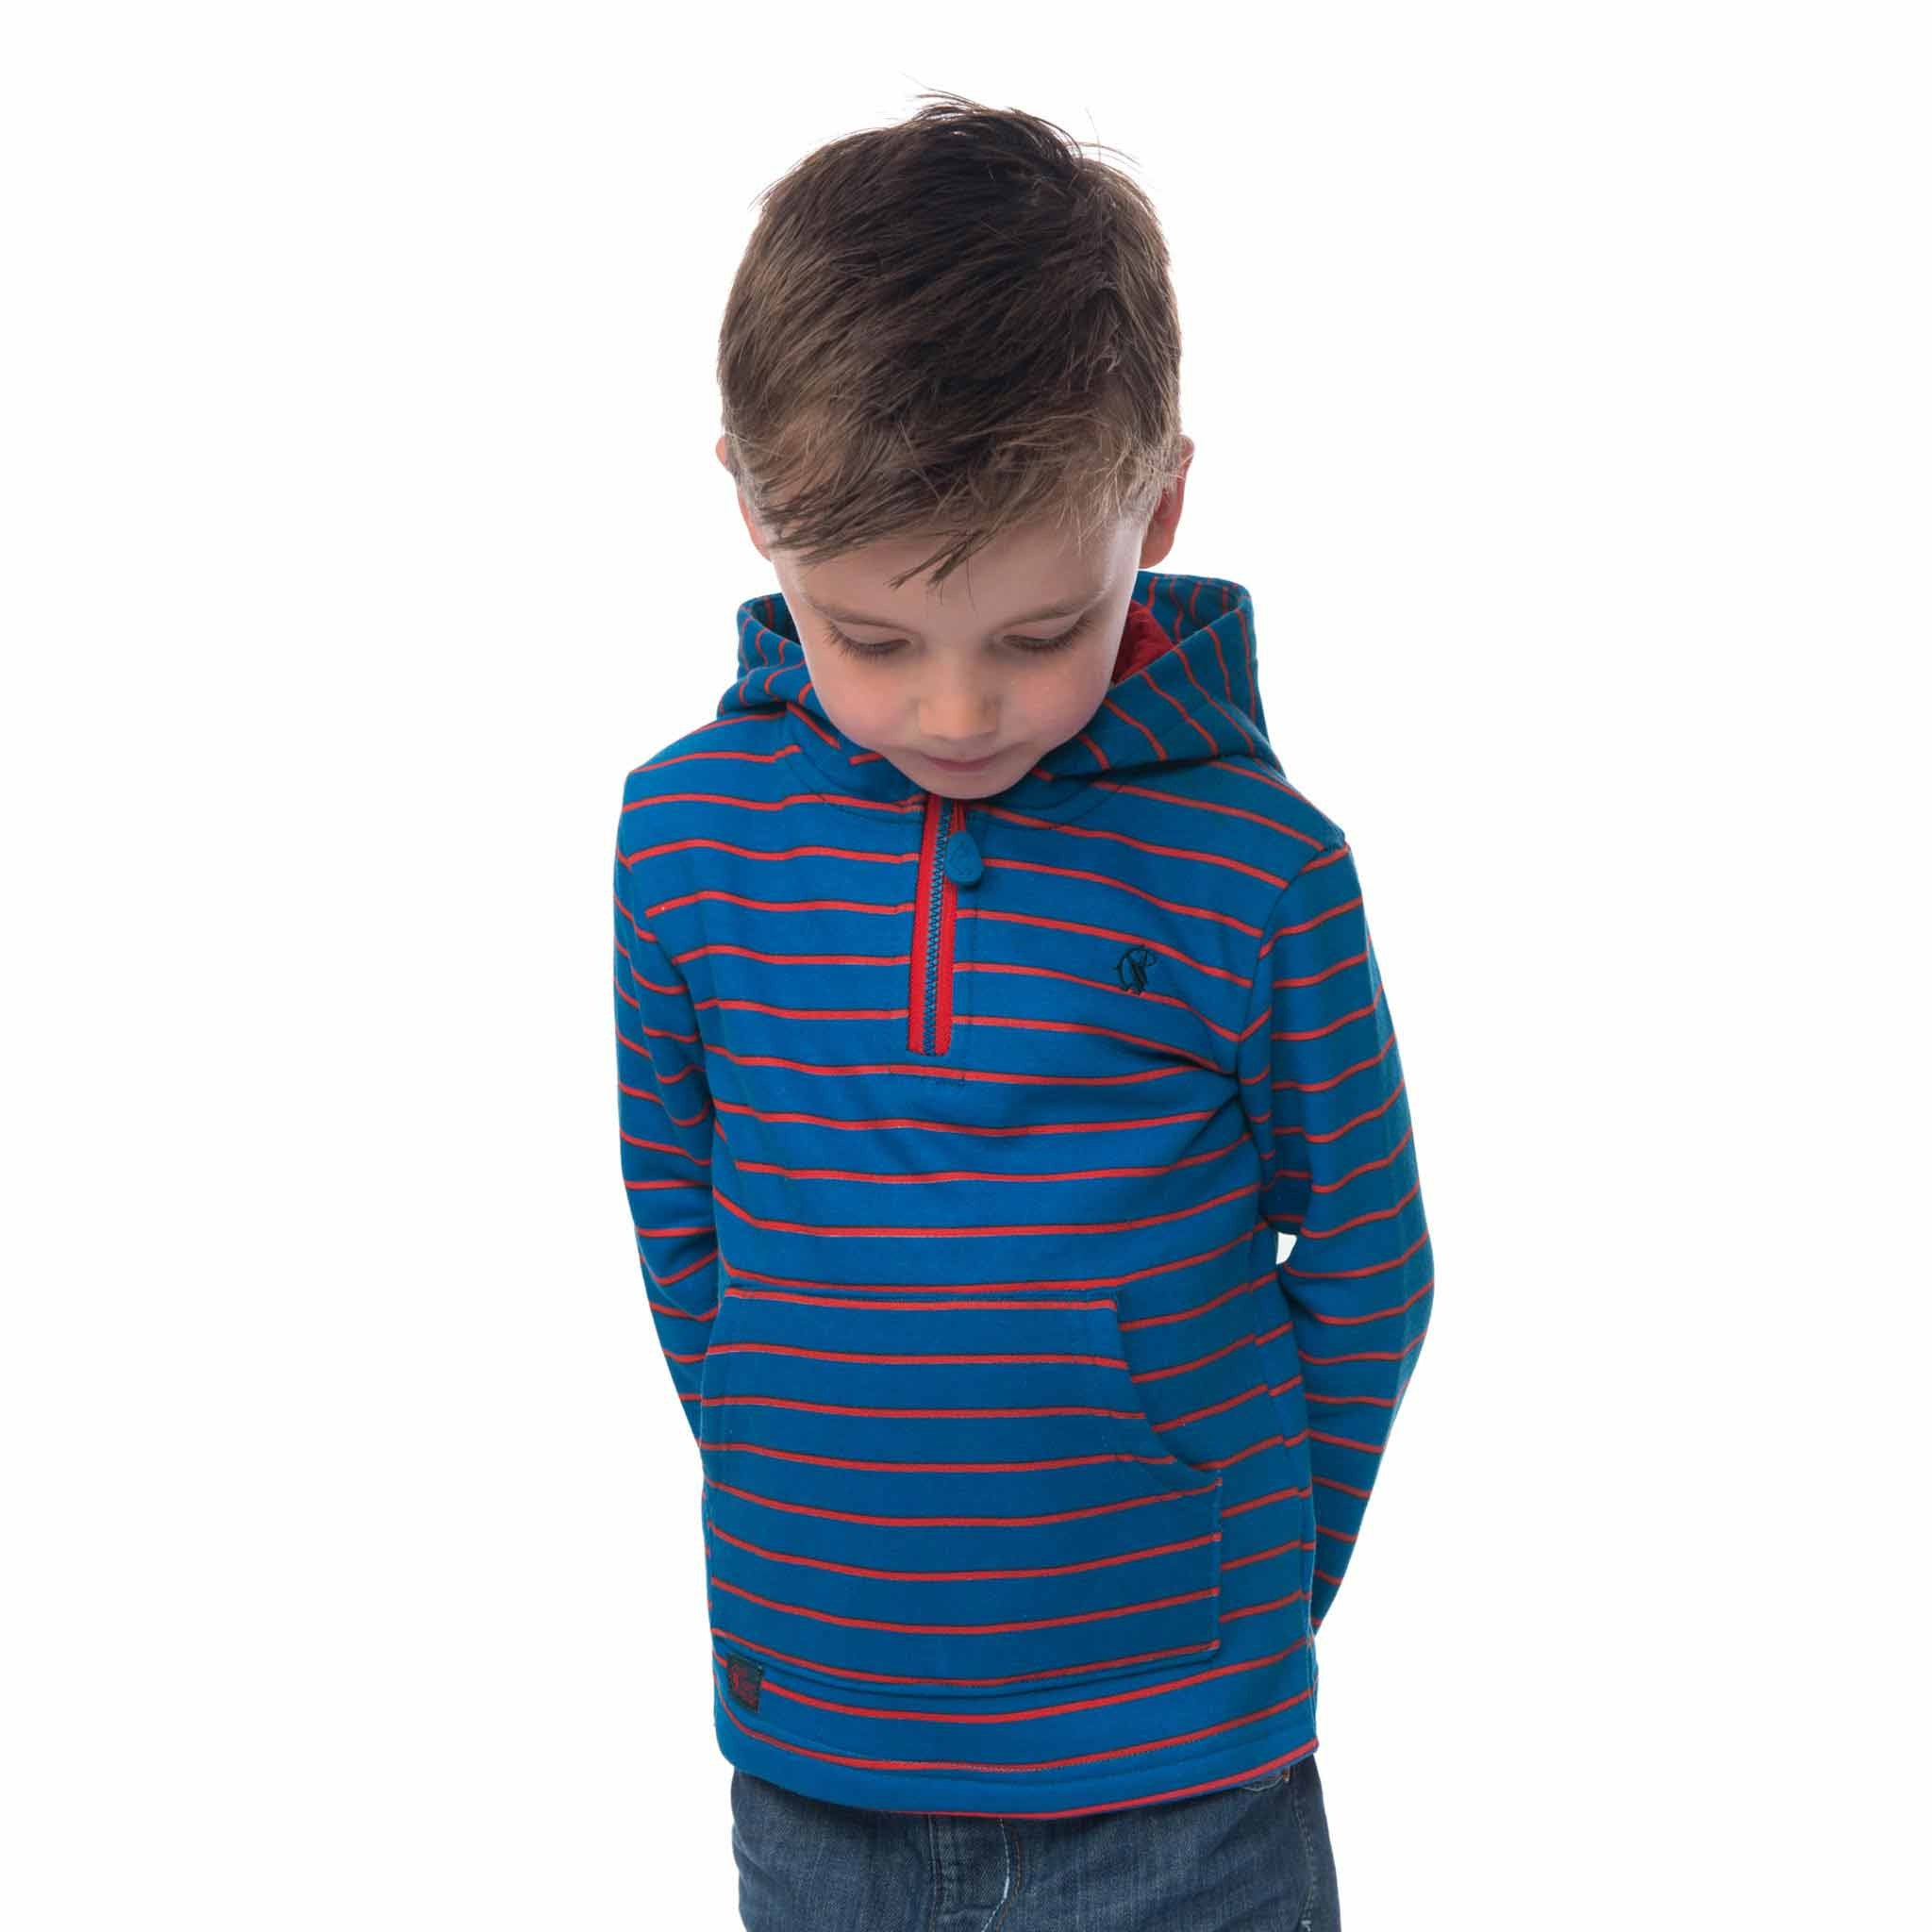 Lighthouse Boys' Bobby Half Zip Jersey Hoodie in Blue with Red Stripe. Half Zipped.